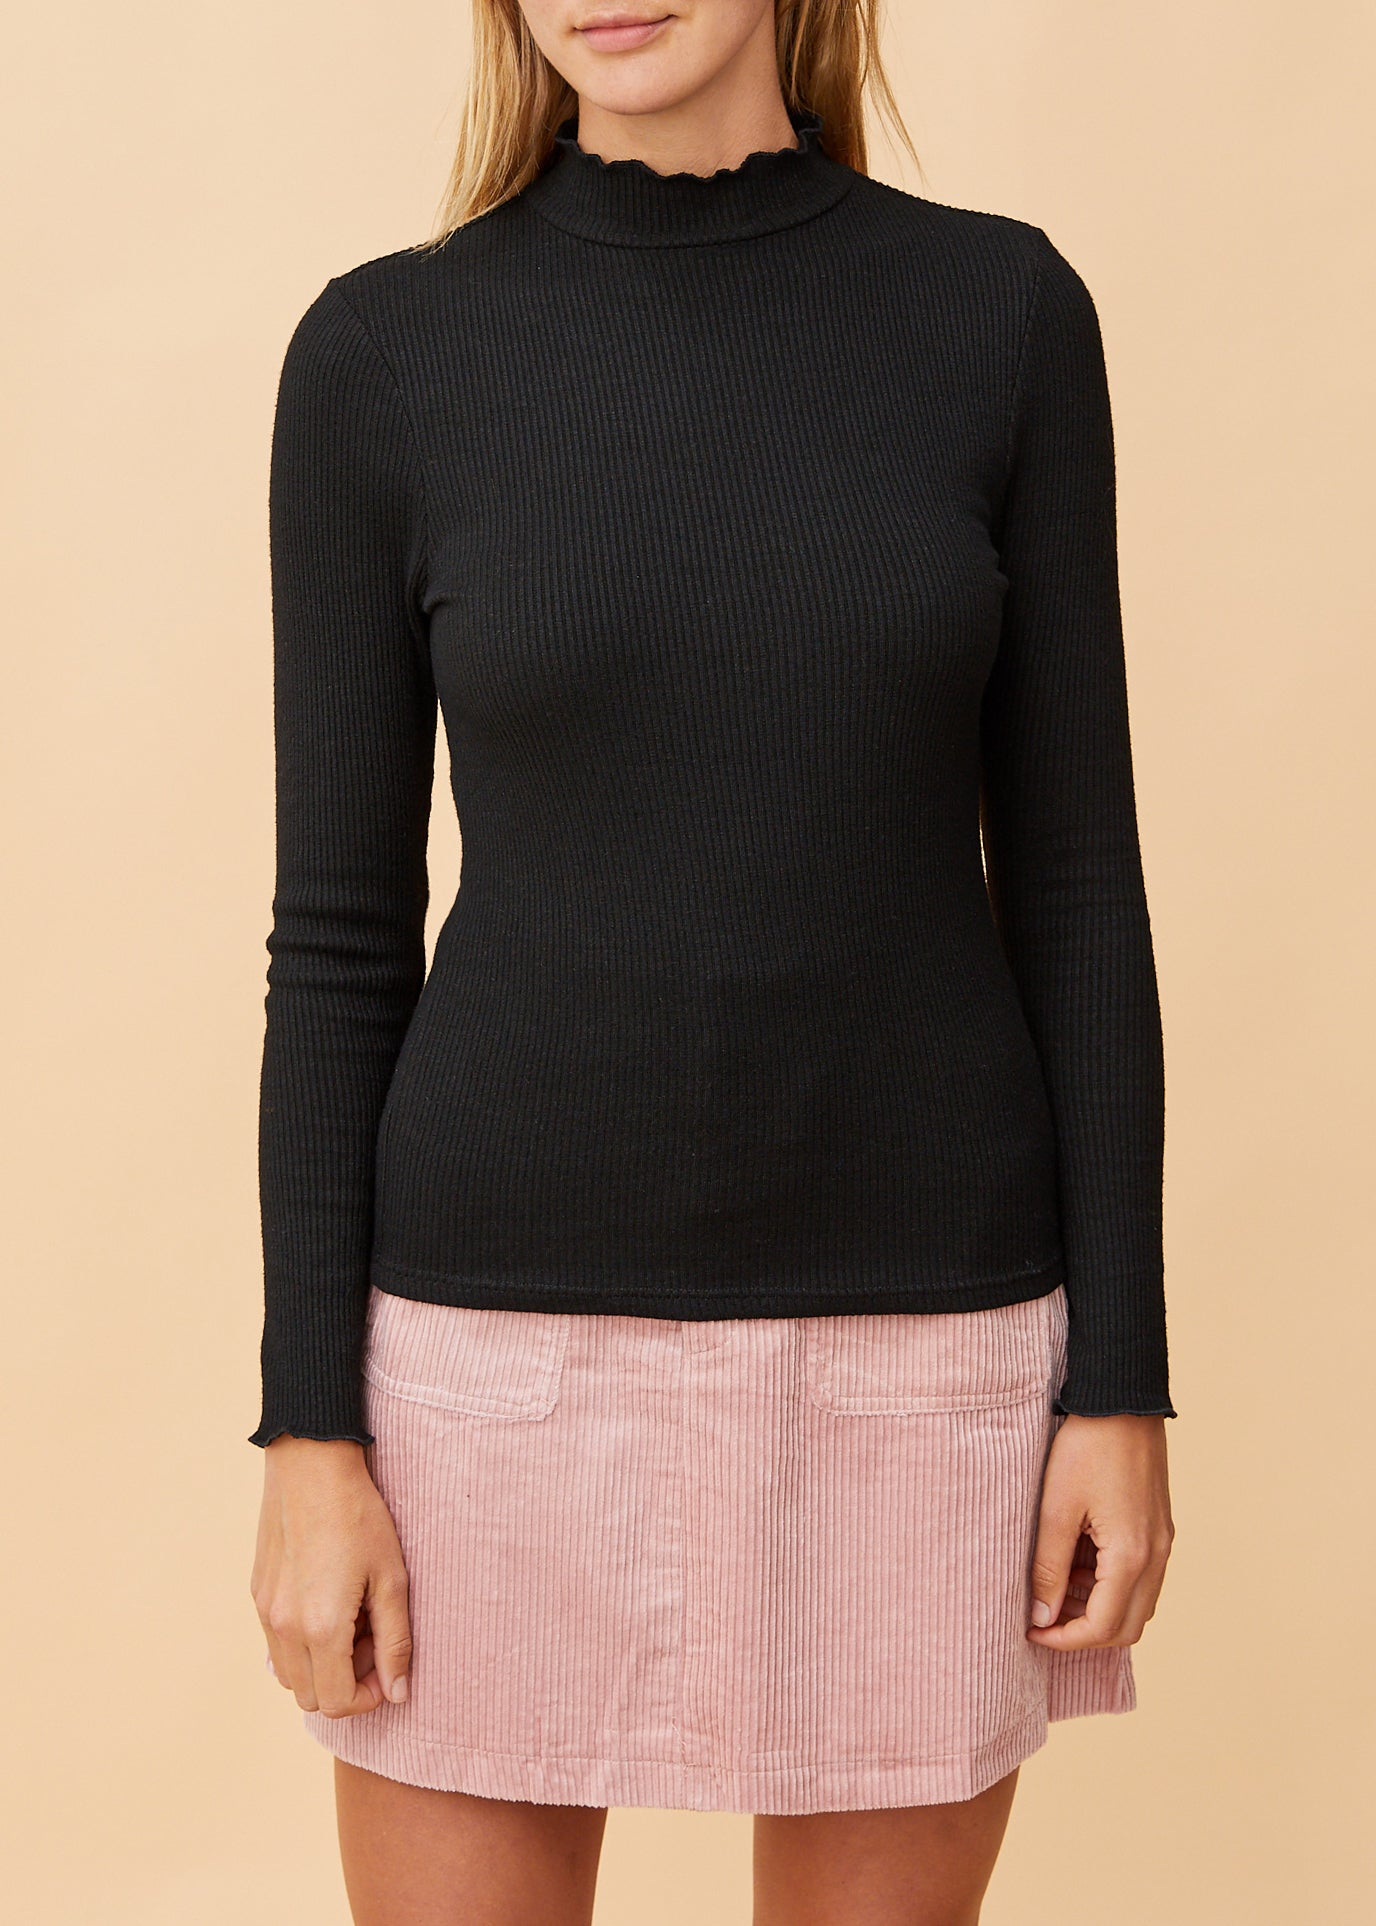 Morengo Long Sleeve Top